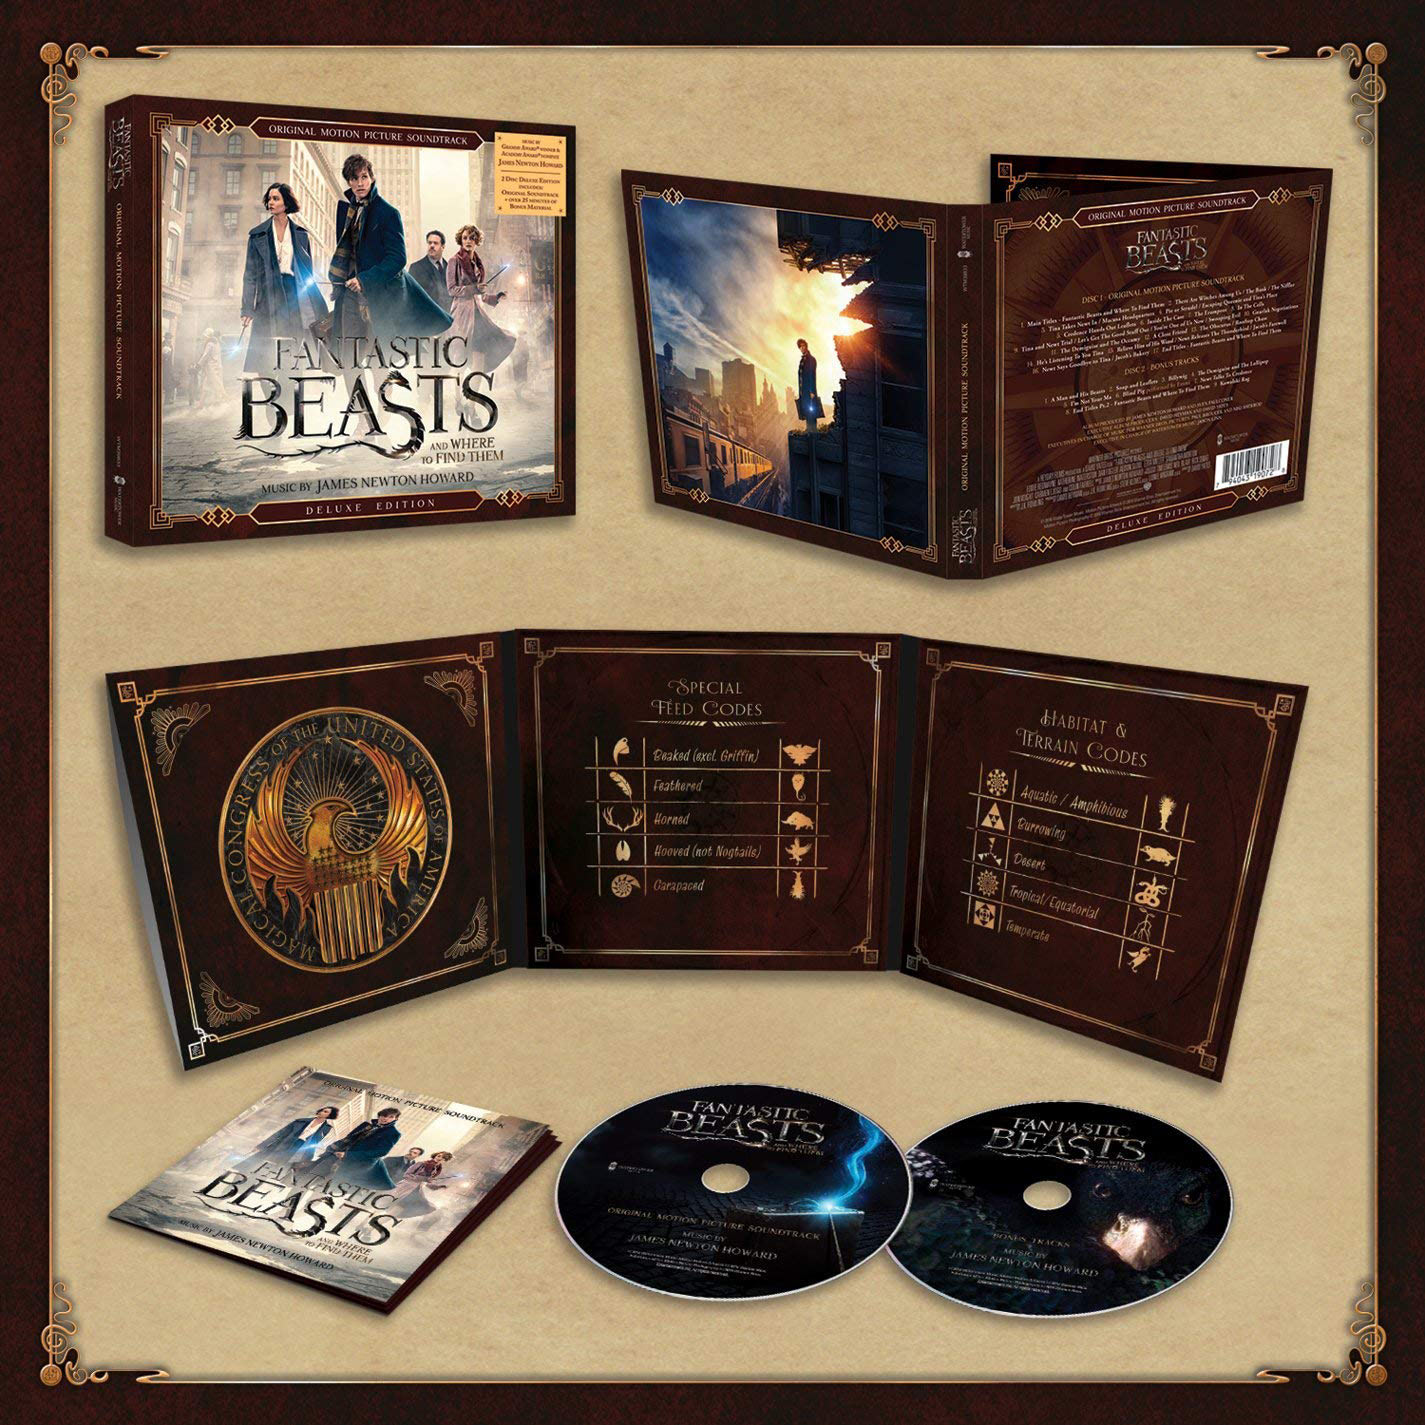 'Fantastic Beasts and Where to Find Them' deluxe soundtrack pack